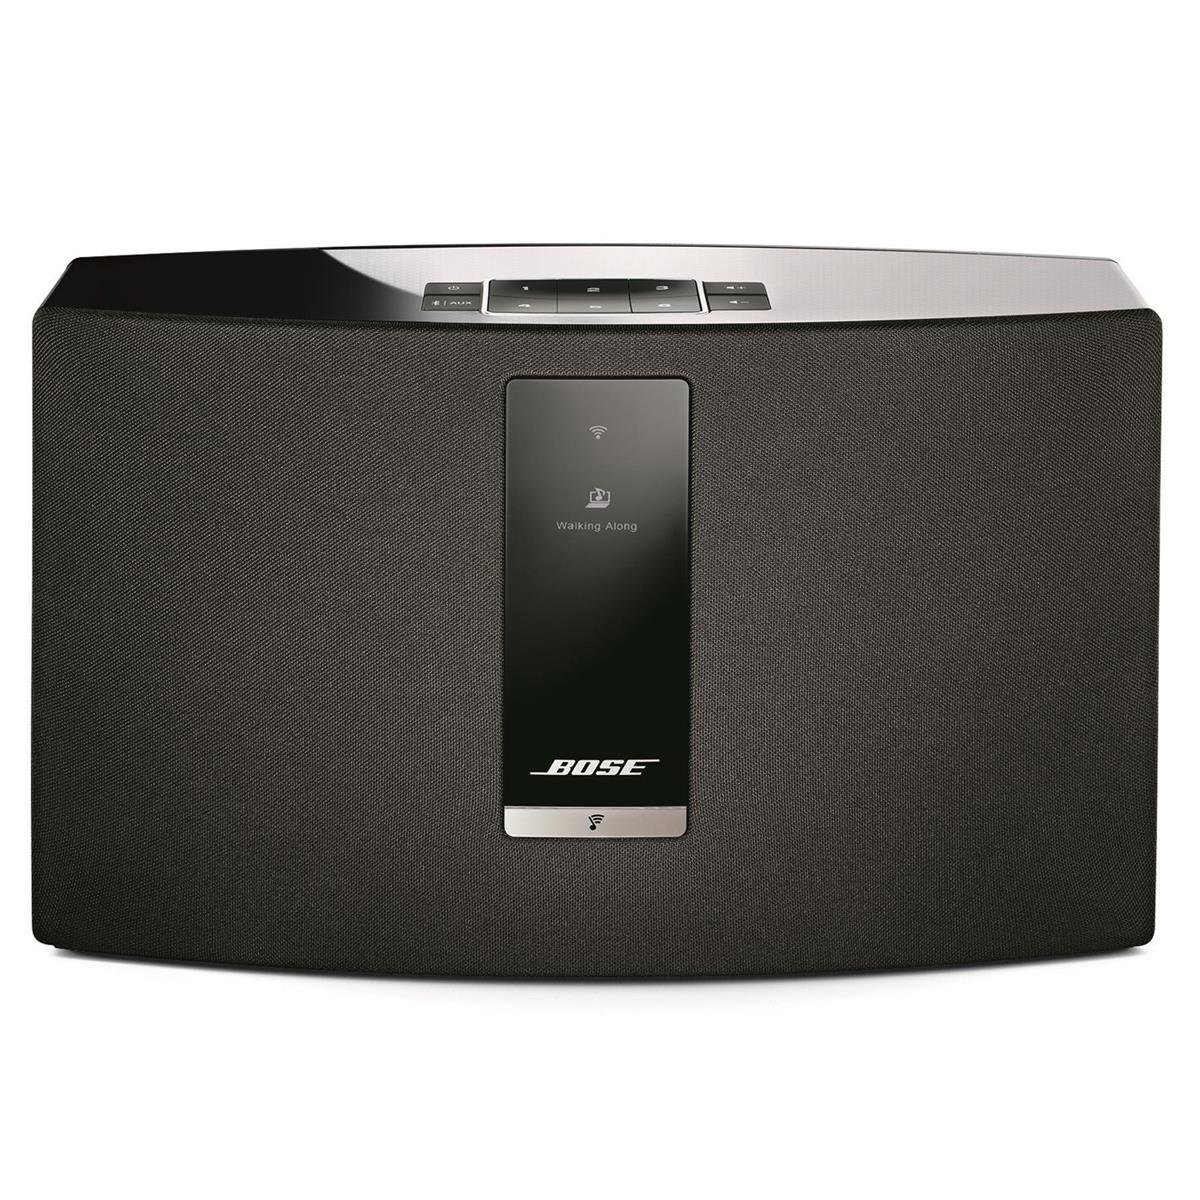 Bose Car Sound System Packages >> Bose Lifestyle 650 Home Entertainment System with SoundTouch 20 III Series Wireless Music System ...